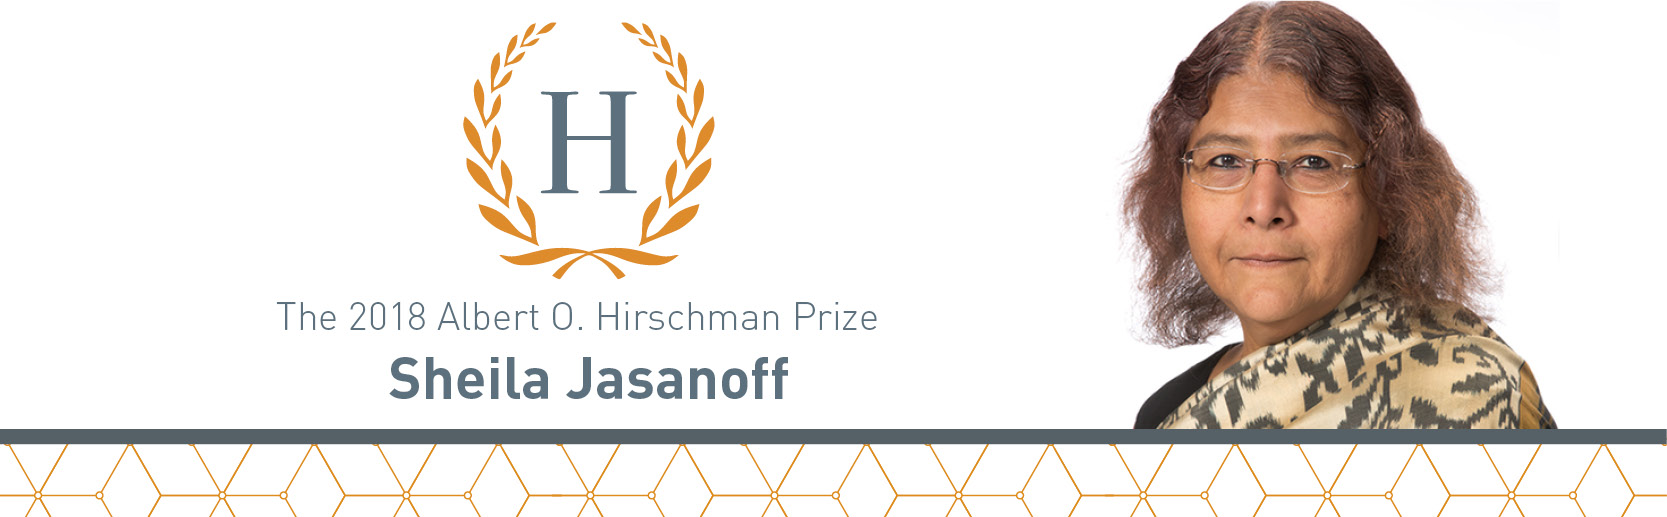 Hirschman Prize logo and photo of recipient Sheila Jasanoff